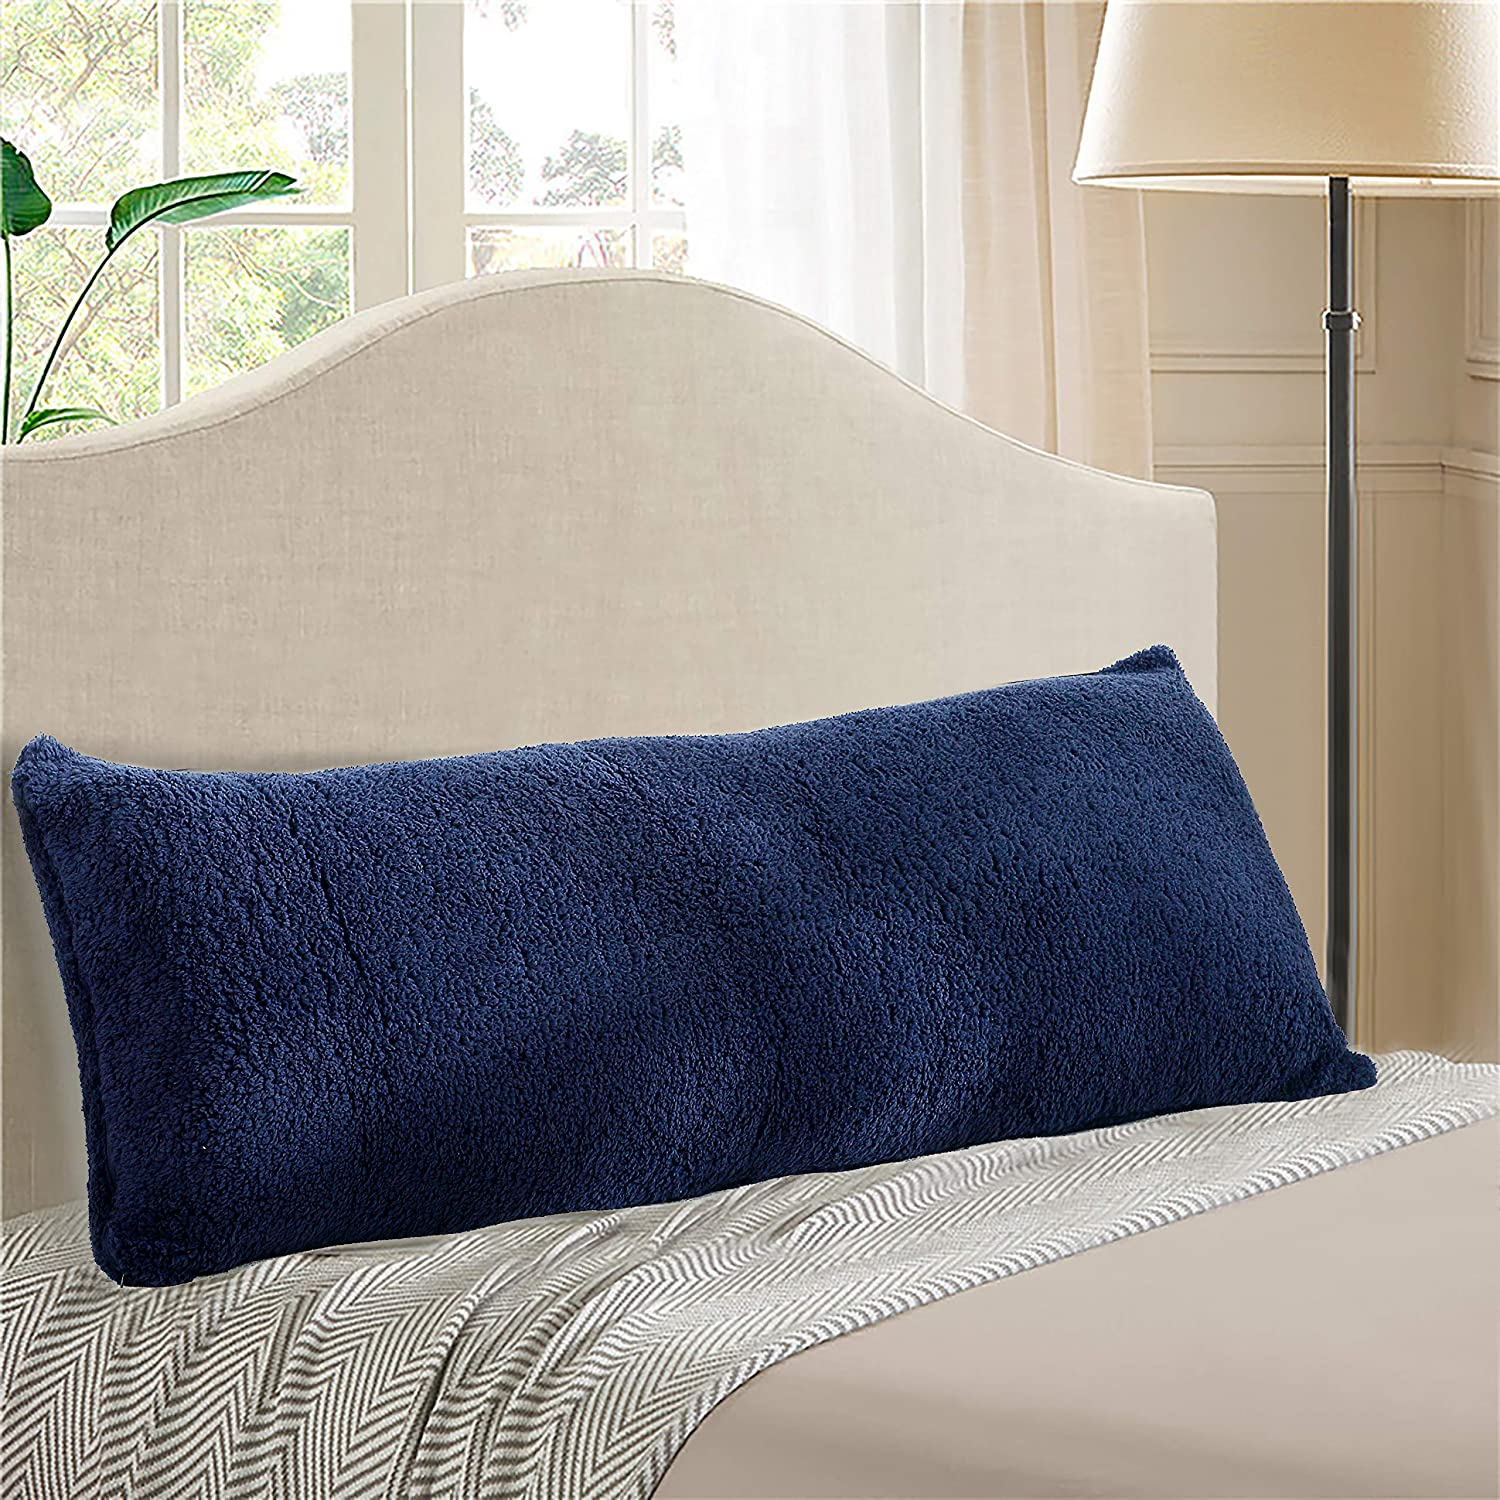 Sherpa Body Pillow Cover.Reafort Ultra Soft Sherpa Body Pillow Cover Case With Zipper Closure 21 X54 Navy 21 X54 Pillow Cover